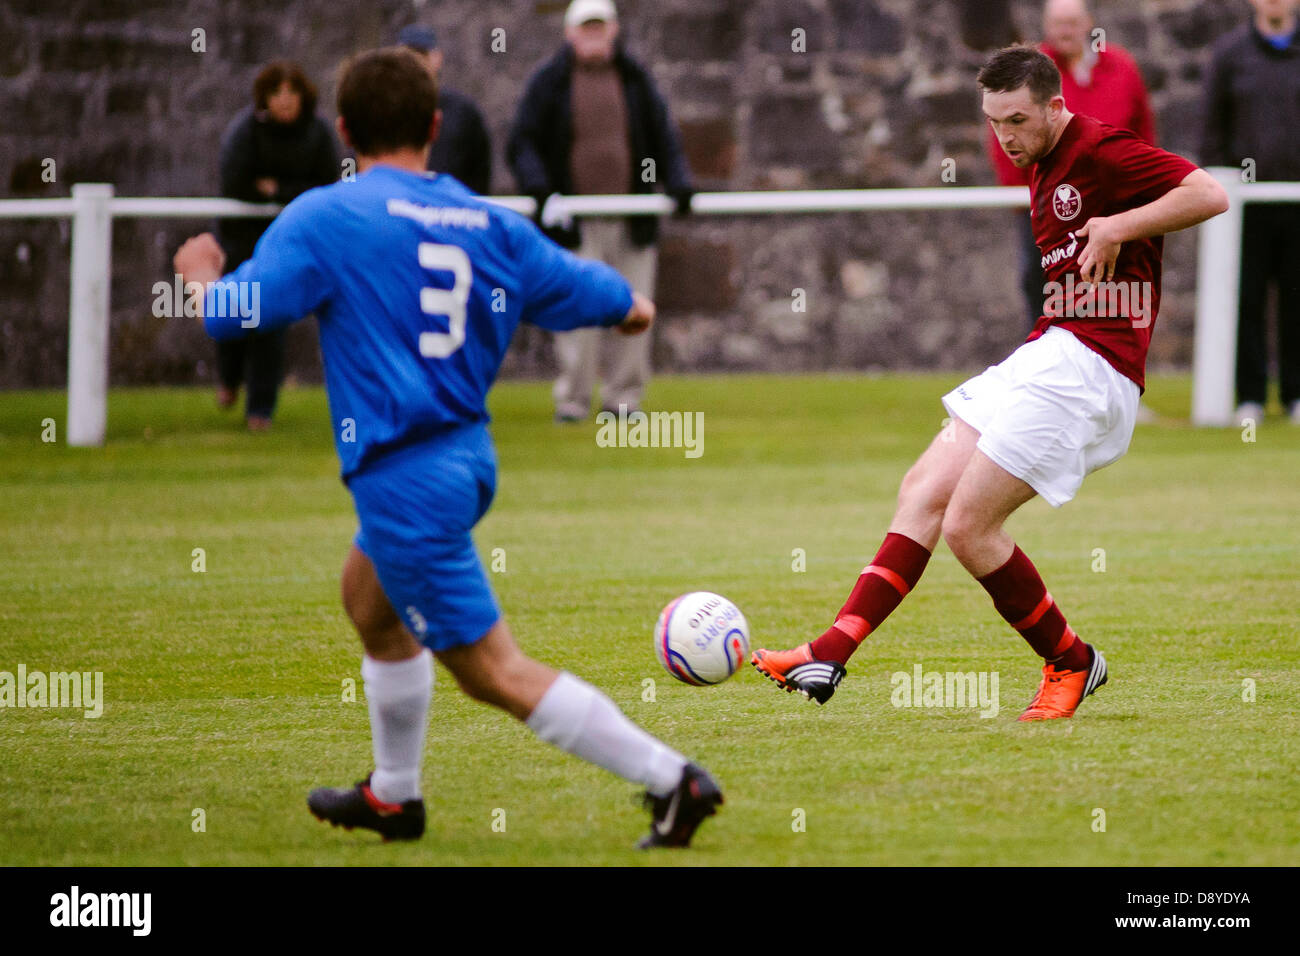 Kelty, Fife, Scotland, UK. 5th June 2013. Brian Ritchie shoots during the East Region Super league match, Kelty - Stock Image